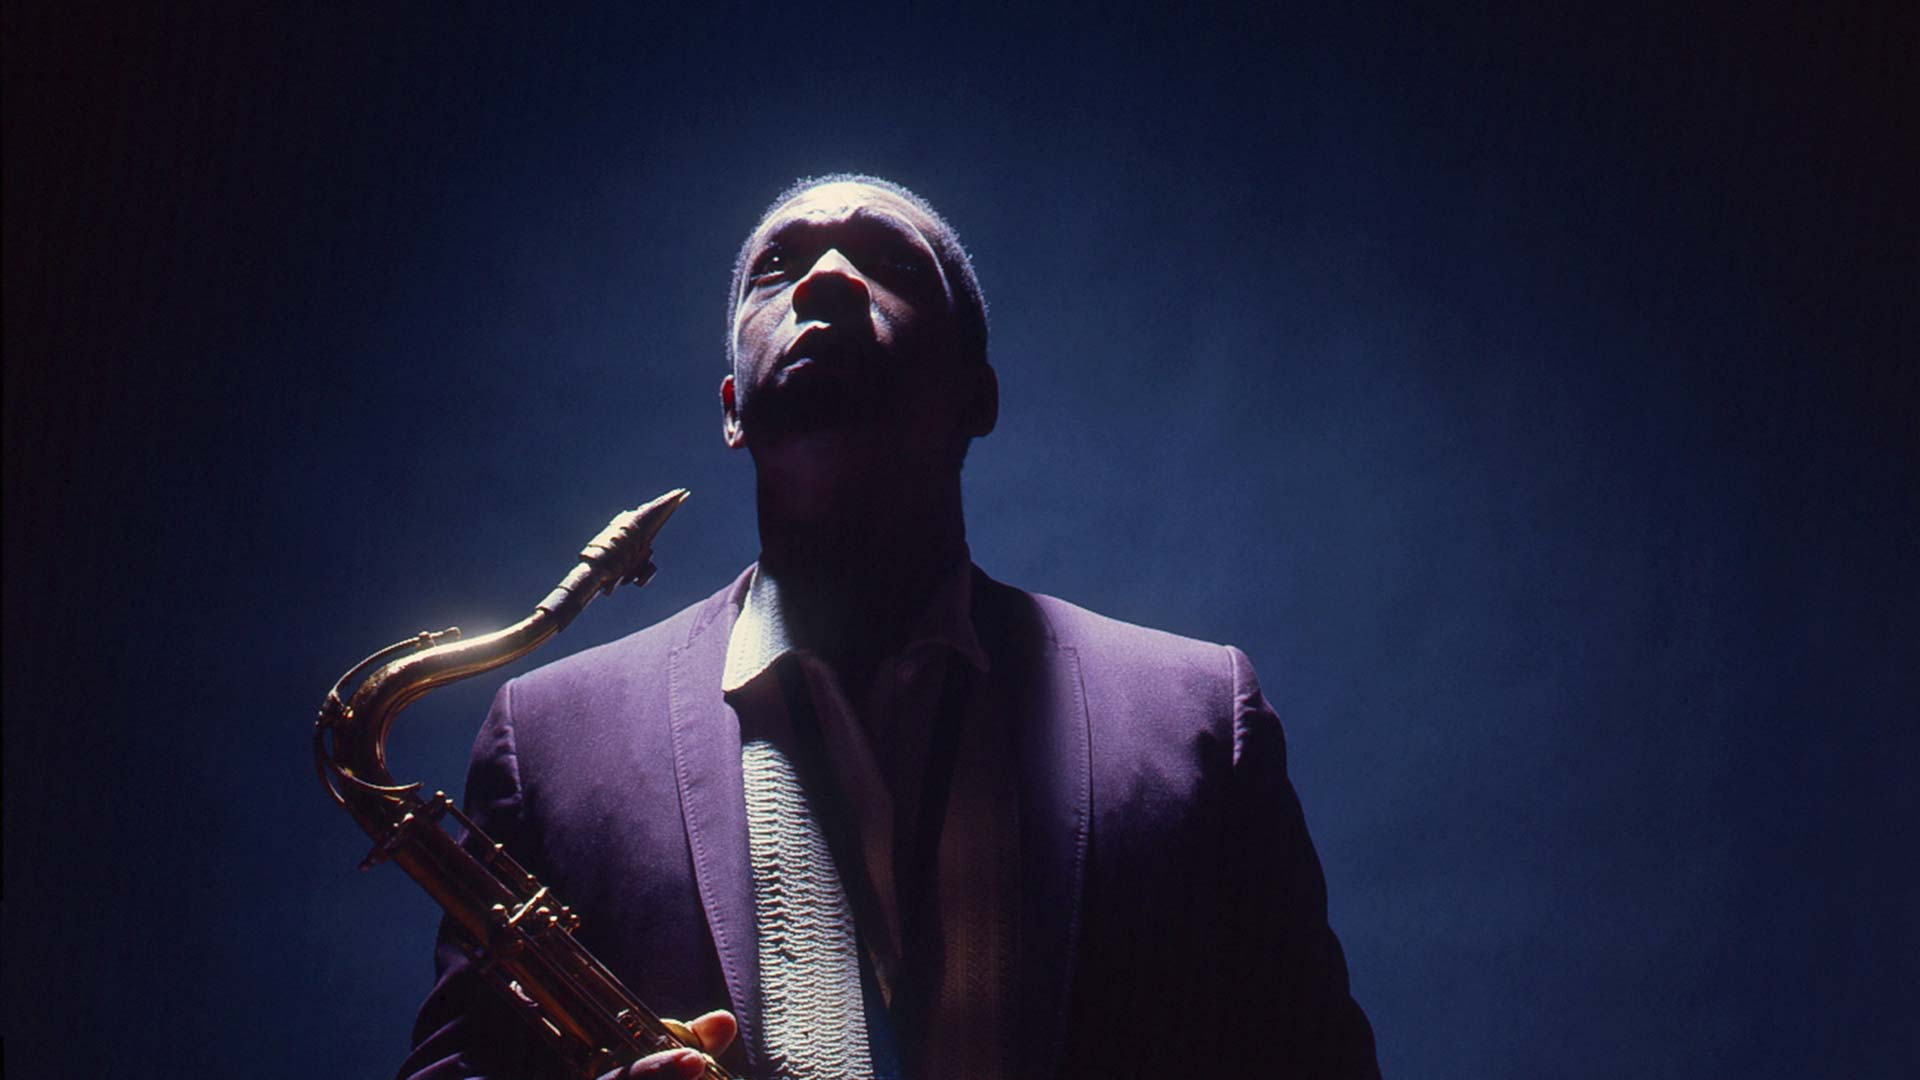 John Coltrane, the subject of John Scheinfeld's documentary Chasing Trane.